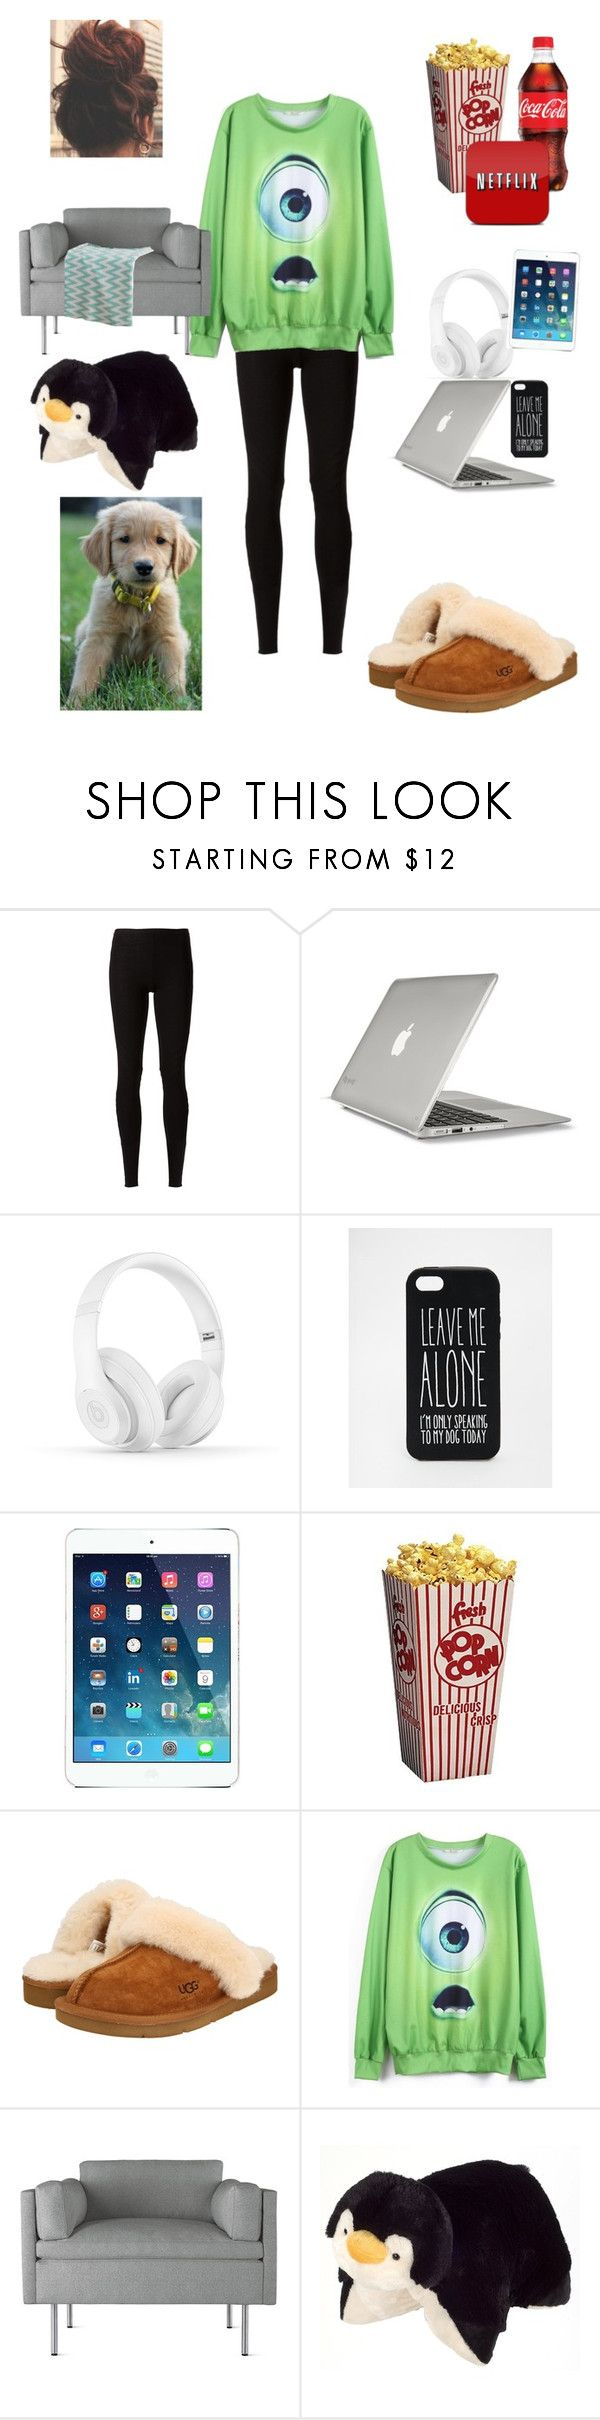 """Untitled #55"" by lelegreenwell ❤ liked on Polyvore featuring Rick Owens Lilies, Speck, Beats by Dr. Dre, ASOS, Skinnydip, Murphy, UGG Australia, BassamFellows and Rizzy Home"